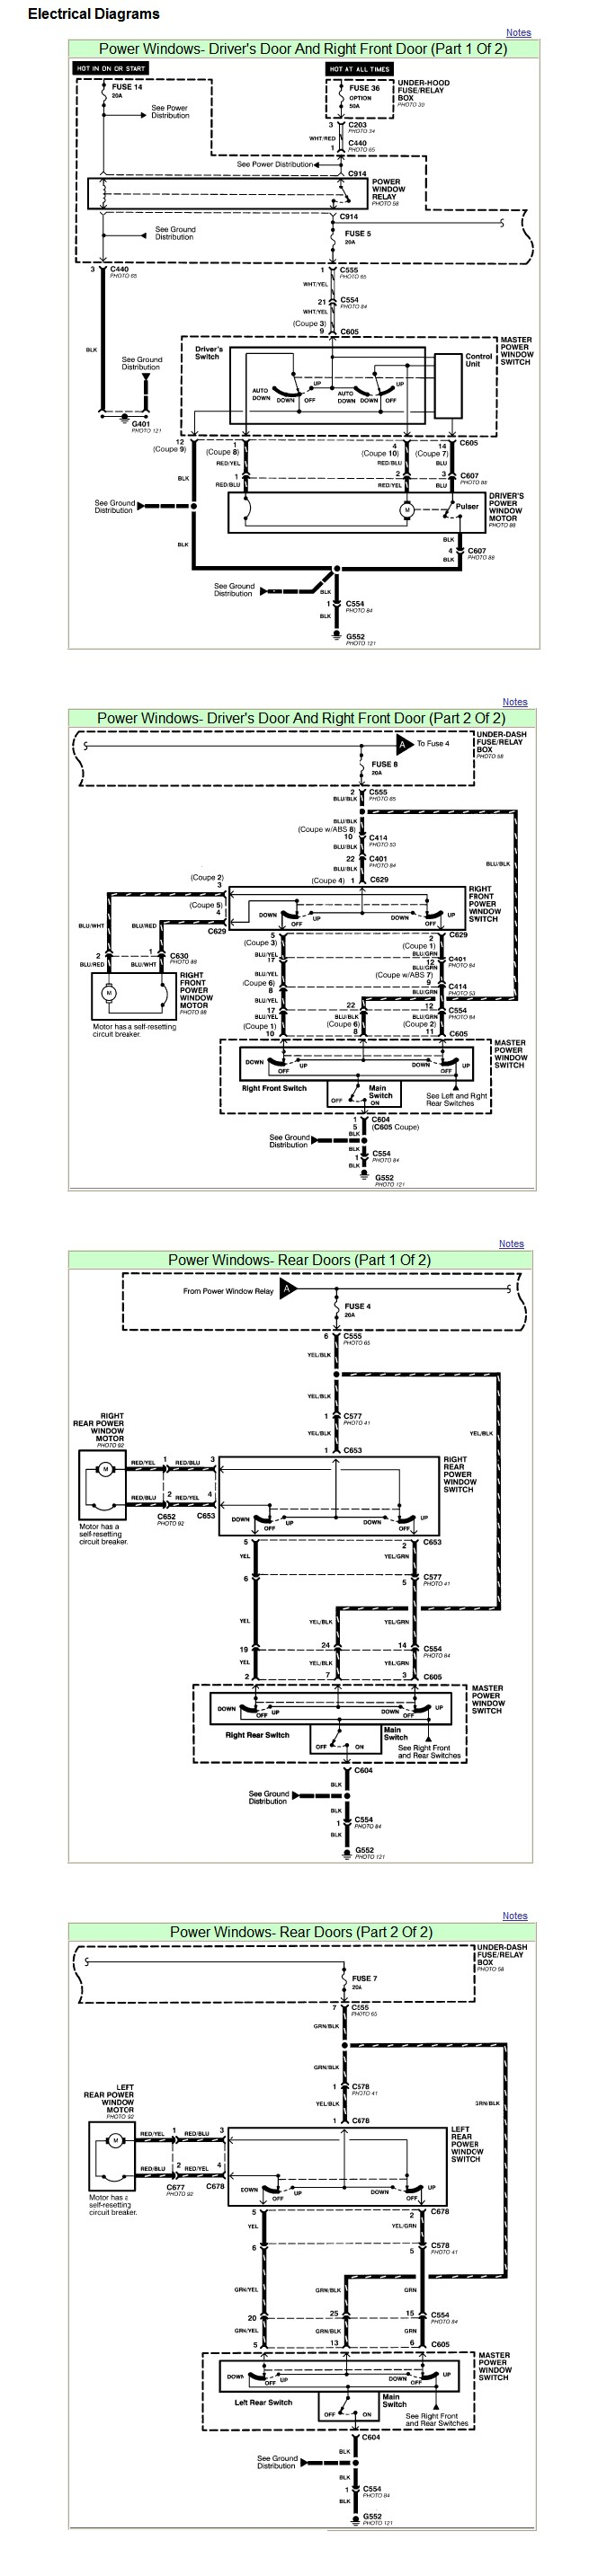 honda fit wiring diagram honda image wiring diagram wiring diagram honda jazz idsi wiring diagram and schematic on honda fit wiring diagram